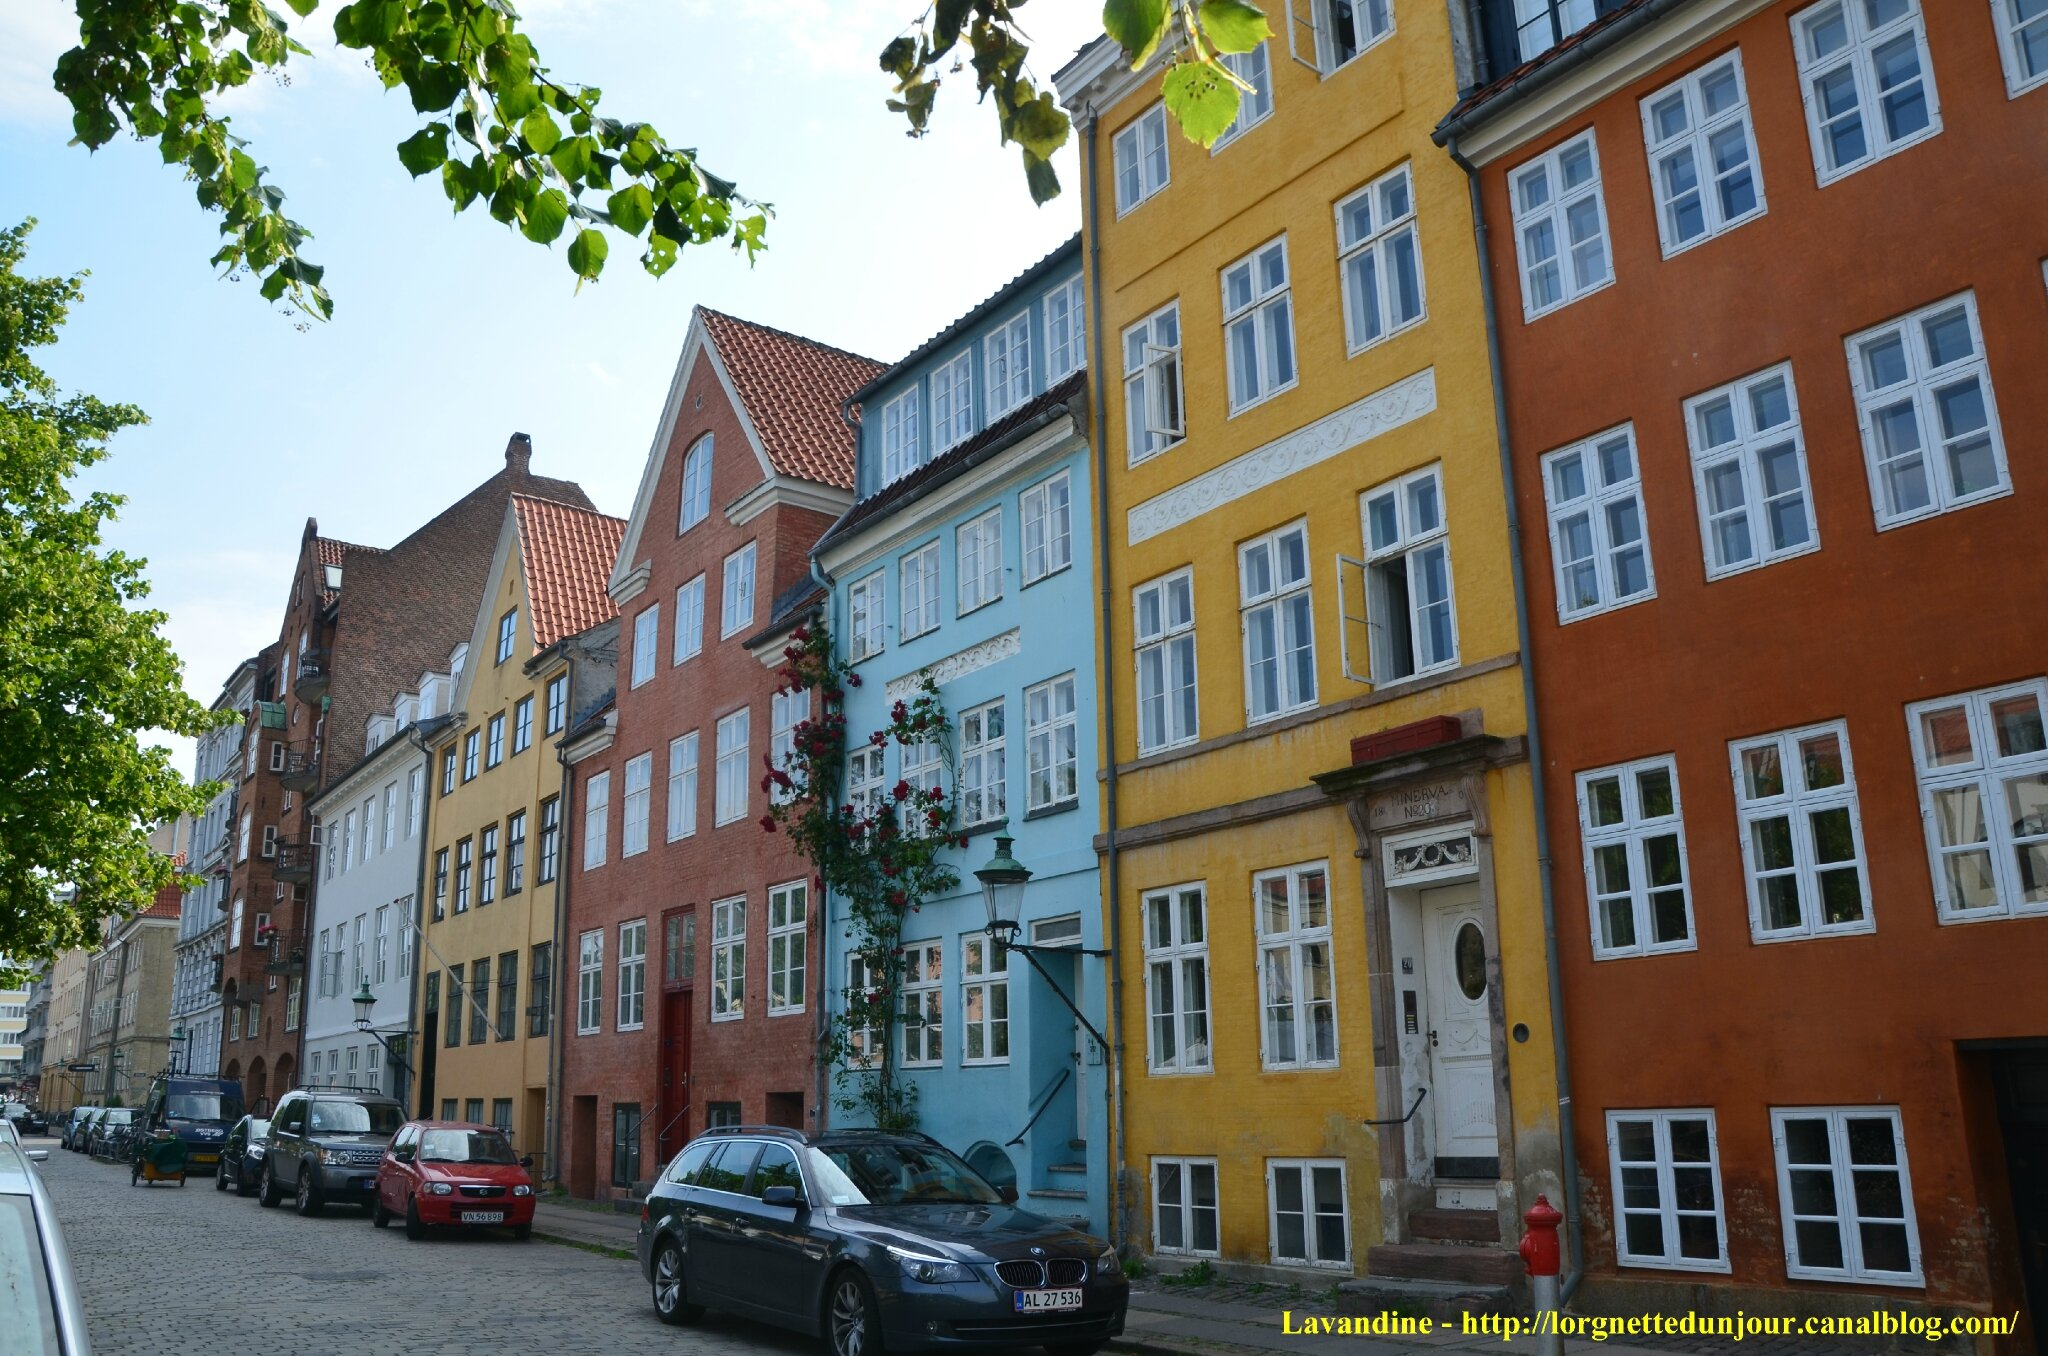 07/09/14 : Une Copenhague plus traditionnelle